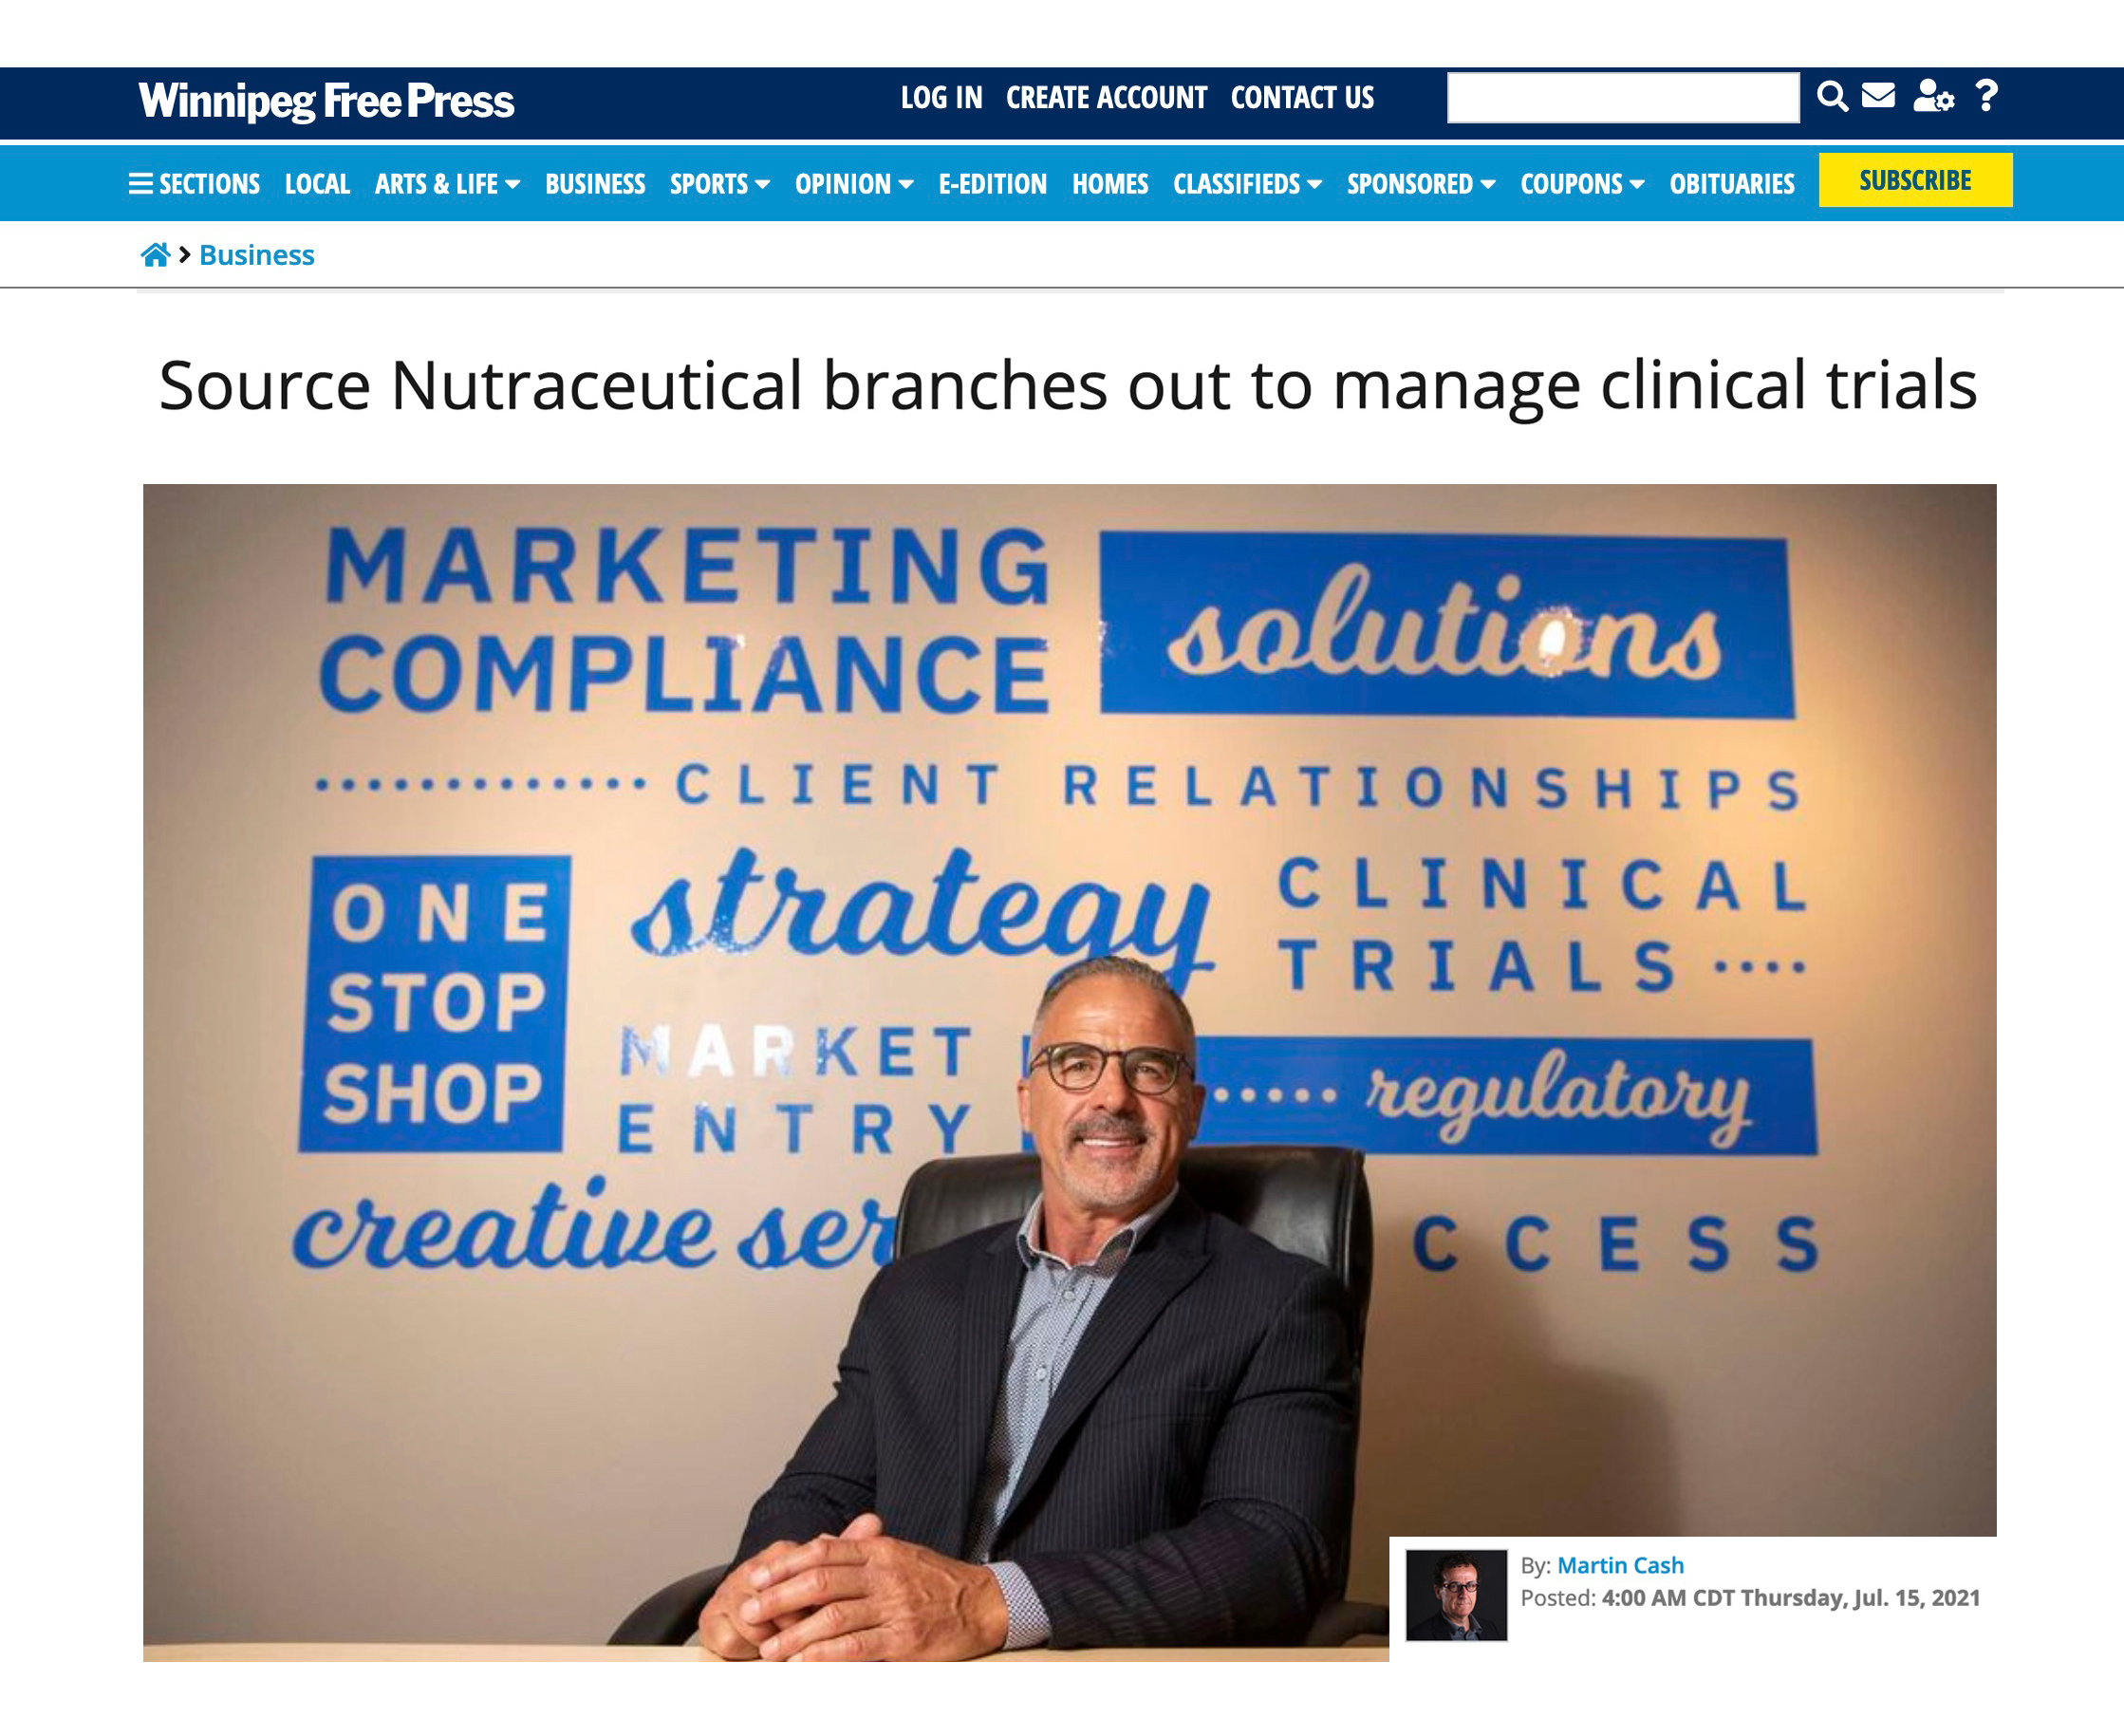 SNI Clinical Trial Services featured in Winnipeg Free Press